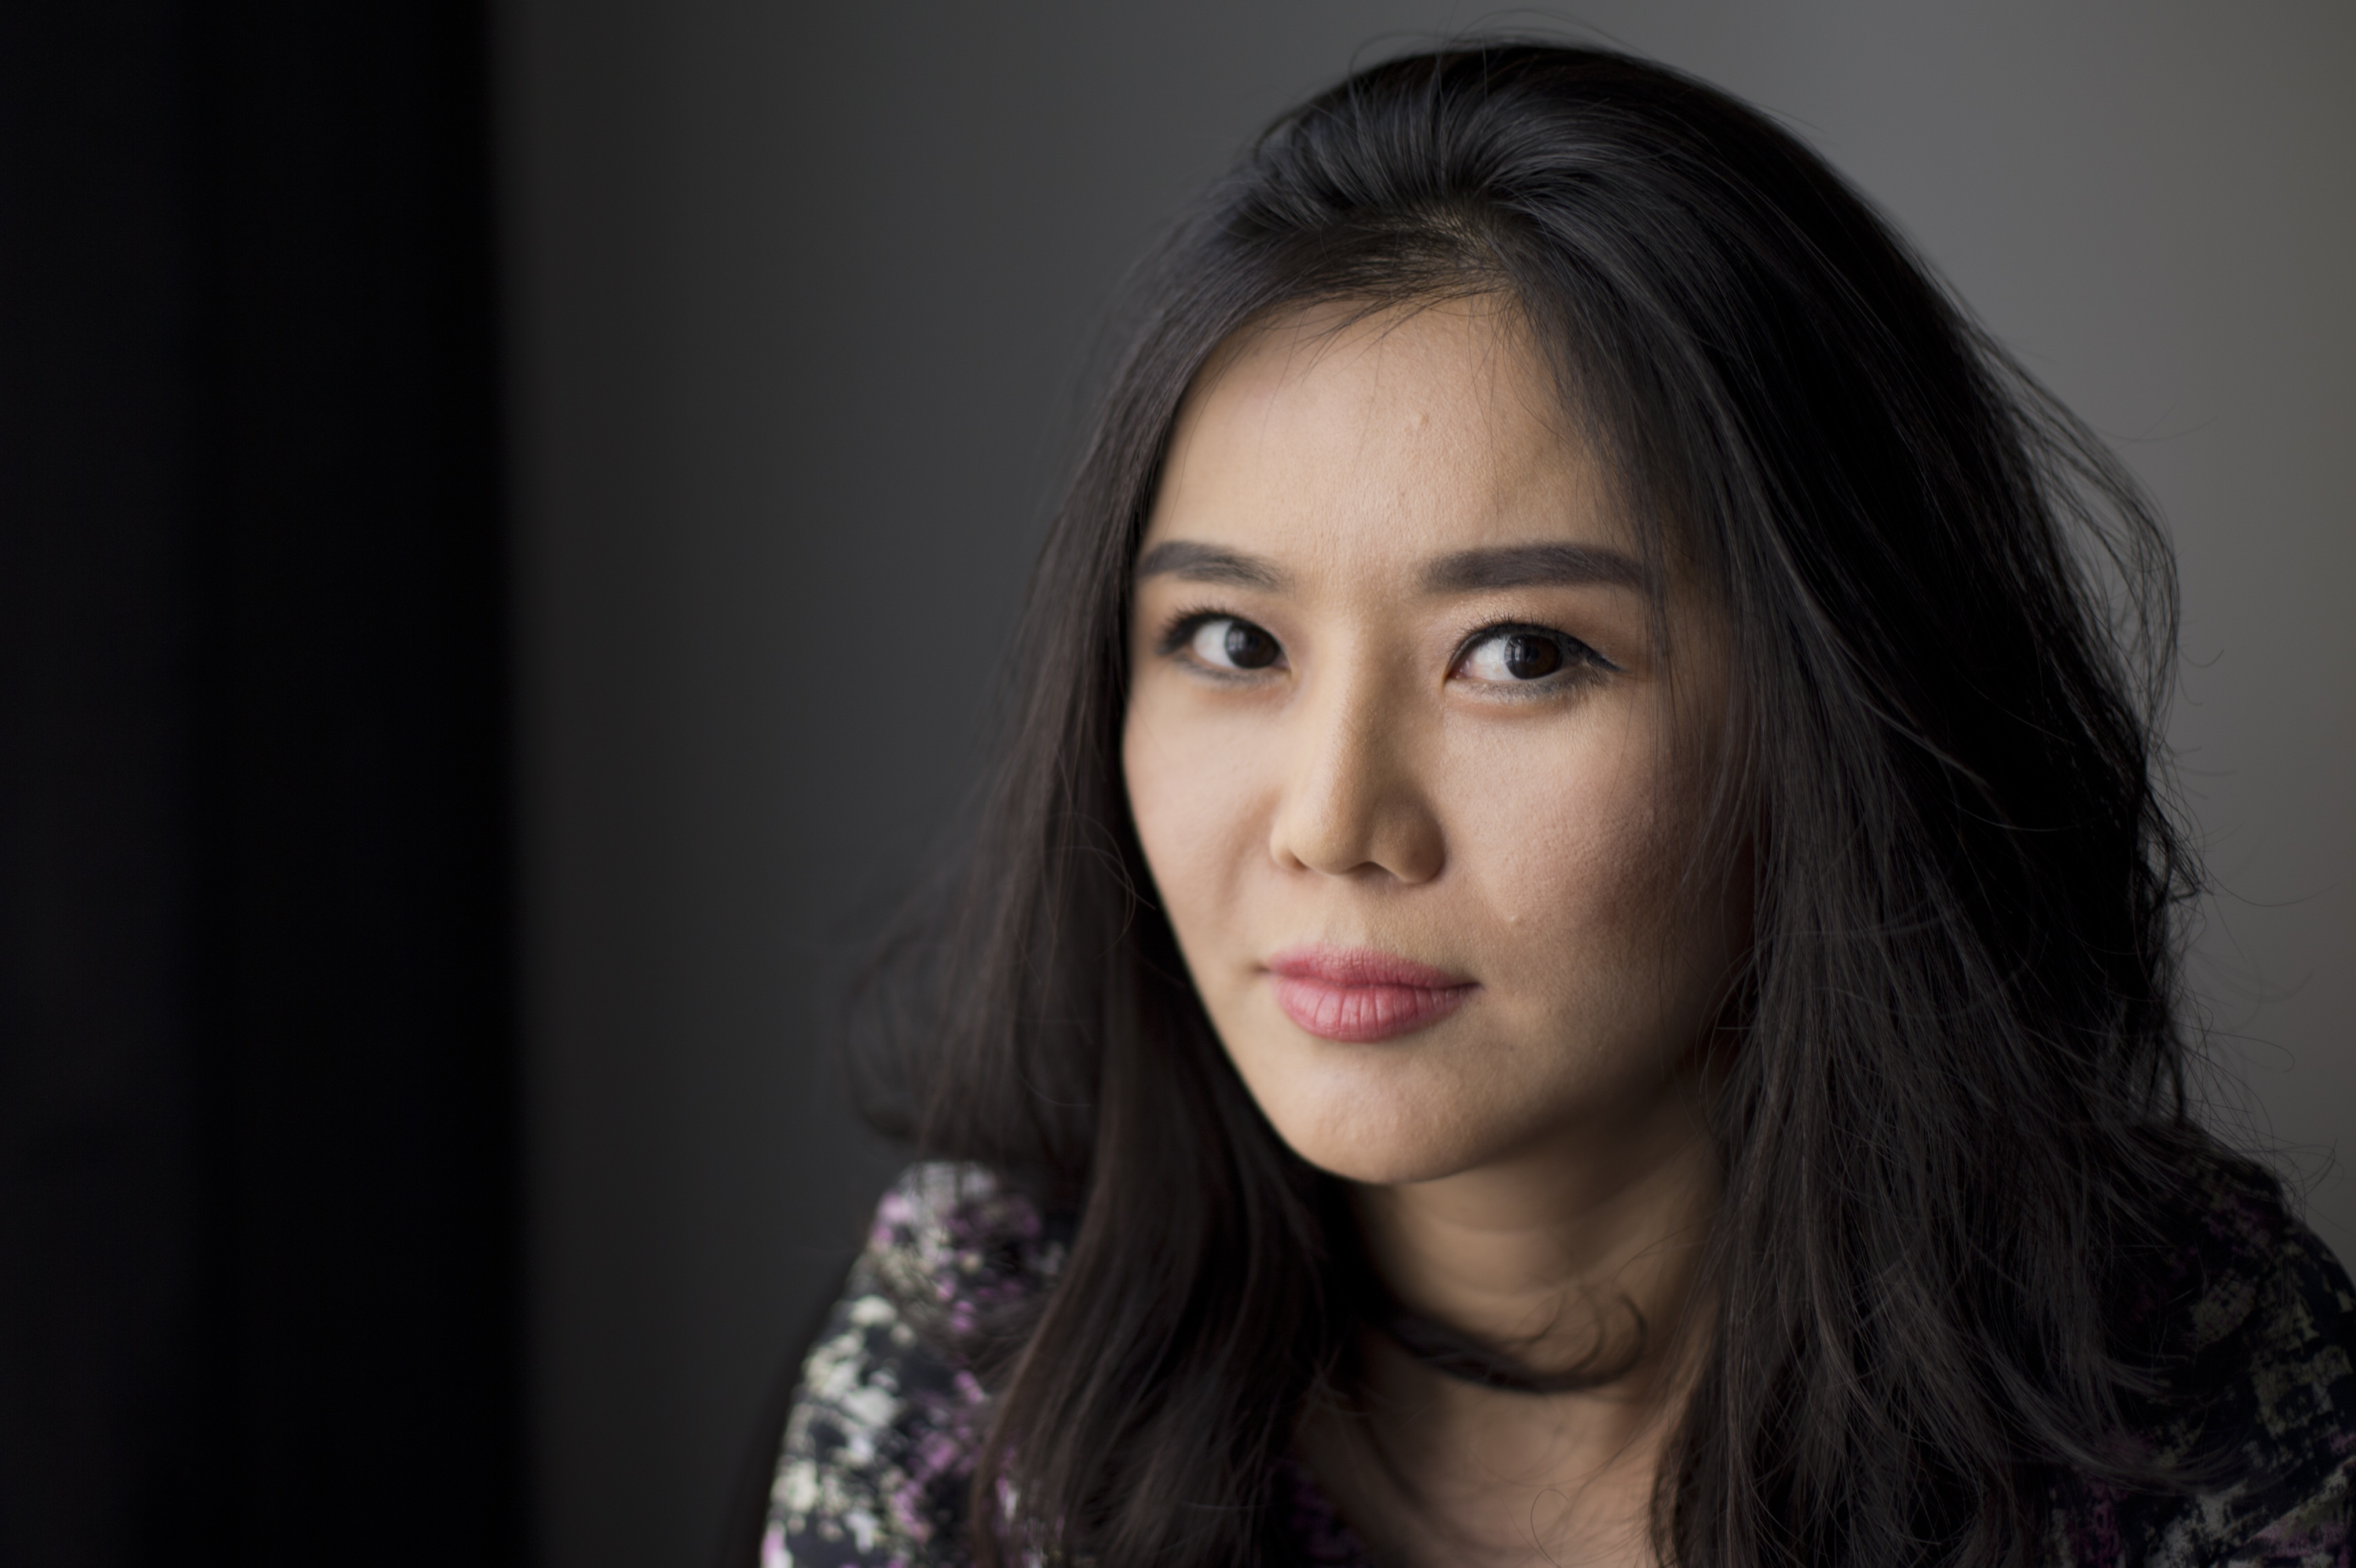 Hyeonseo Lee on July 13, 2015. Lee fled North Korea, and has written a book about her escape, and her return to North Korea to help her parents escape